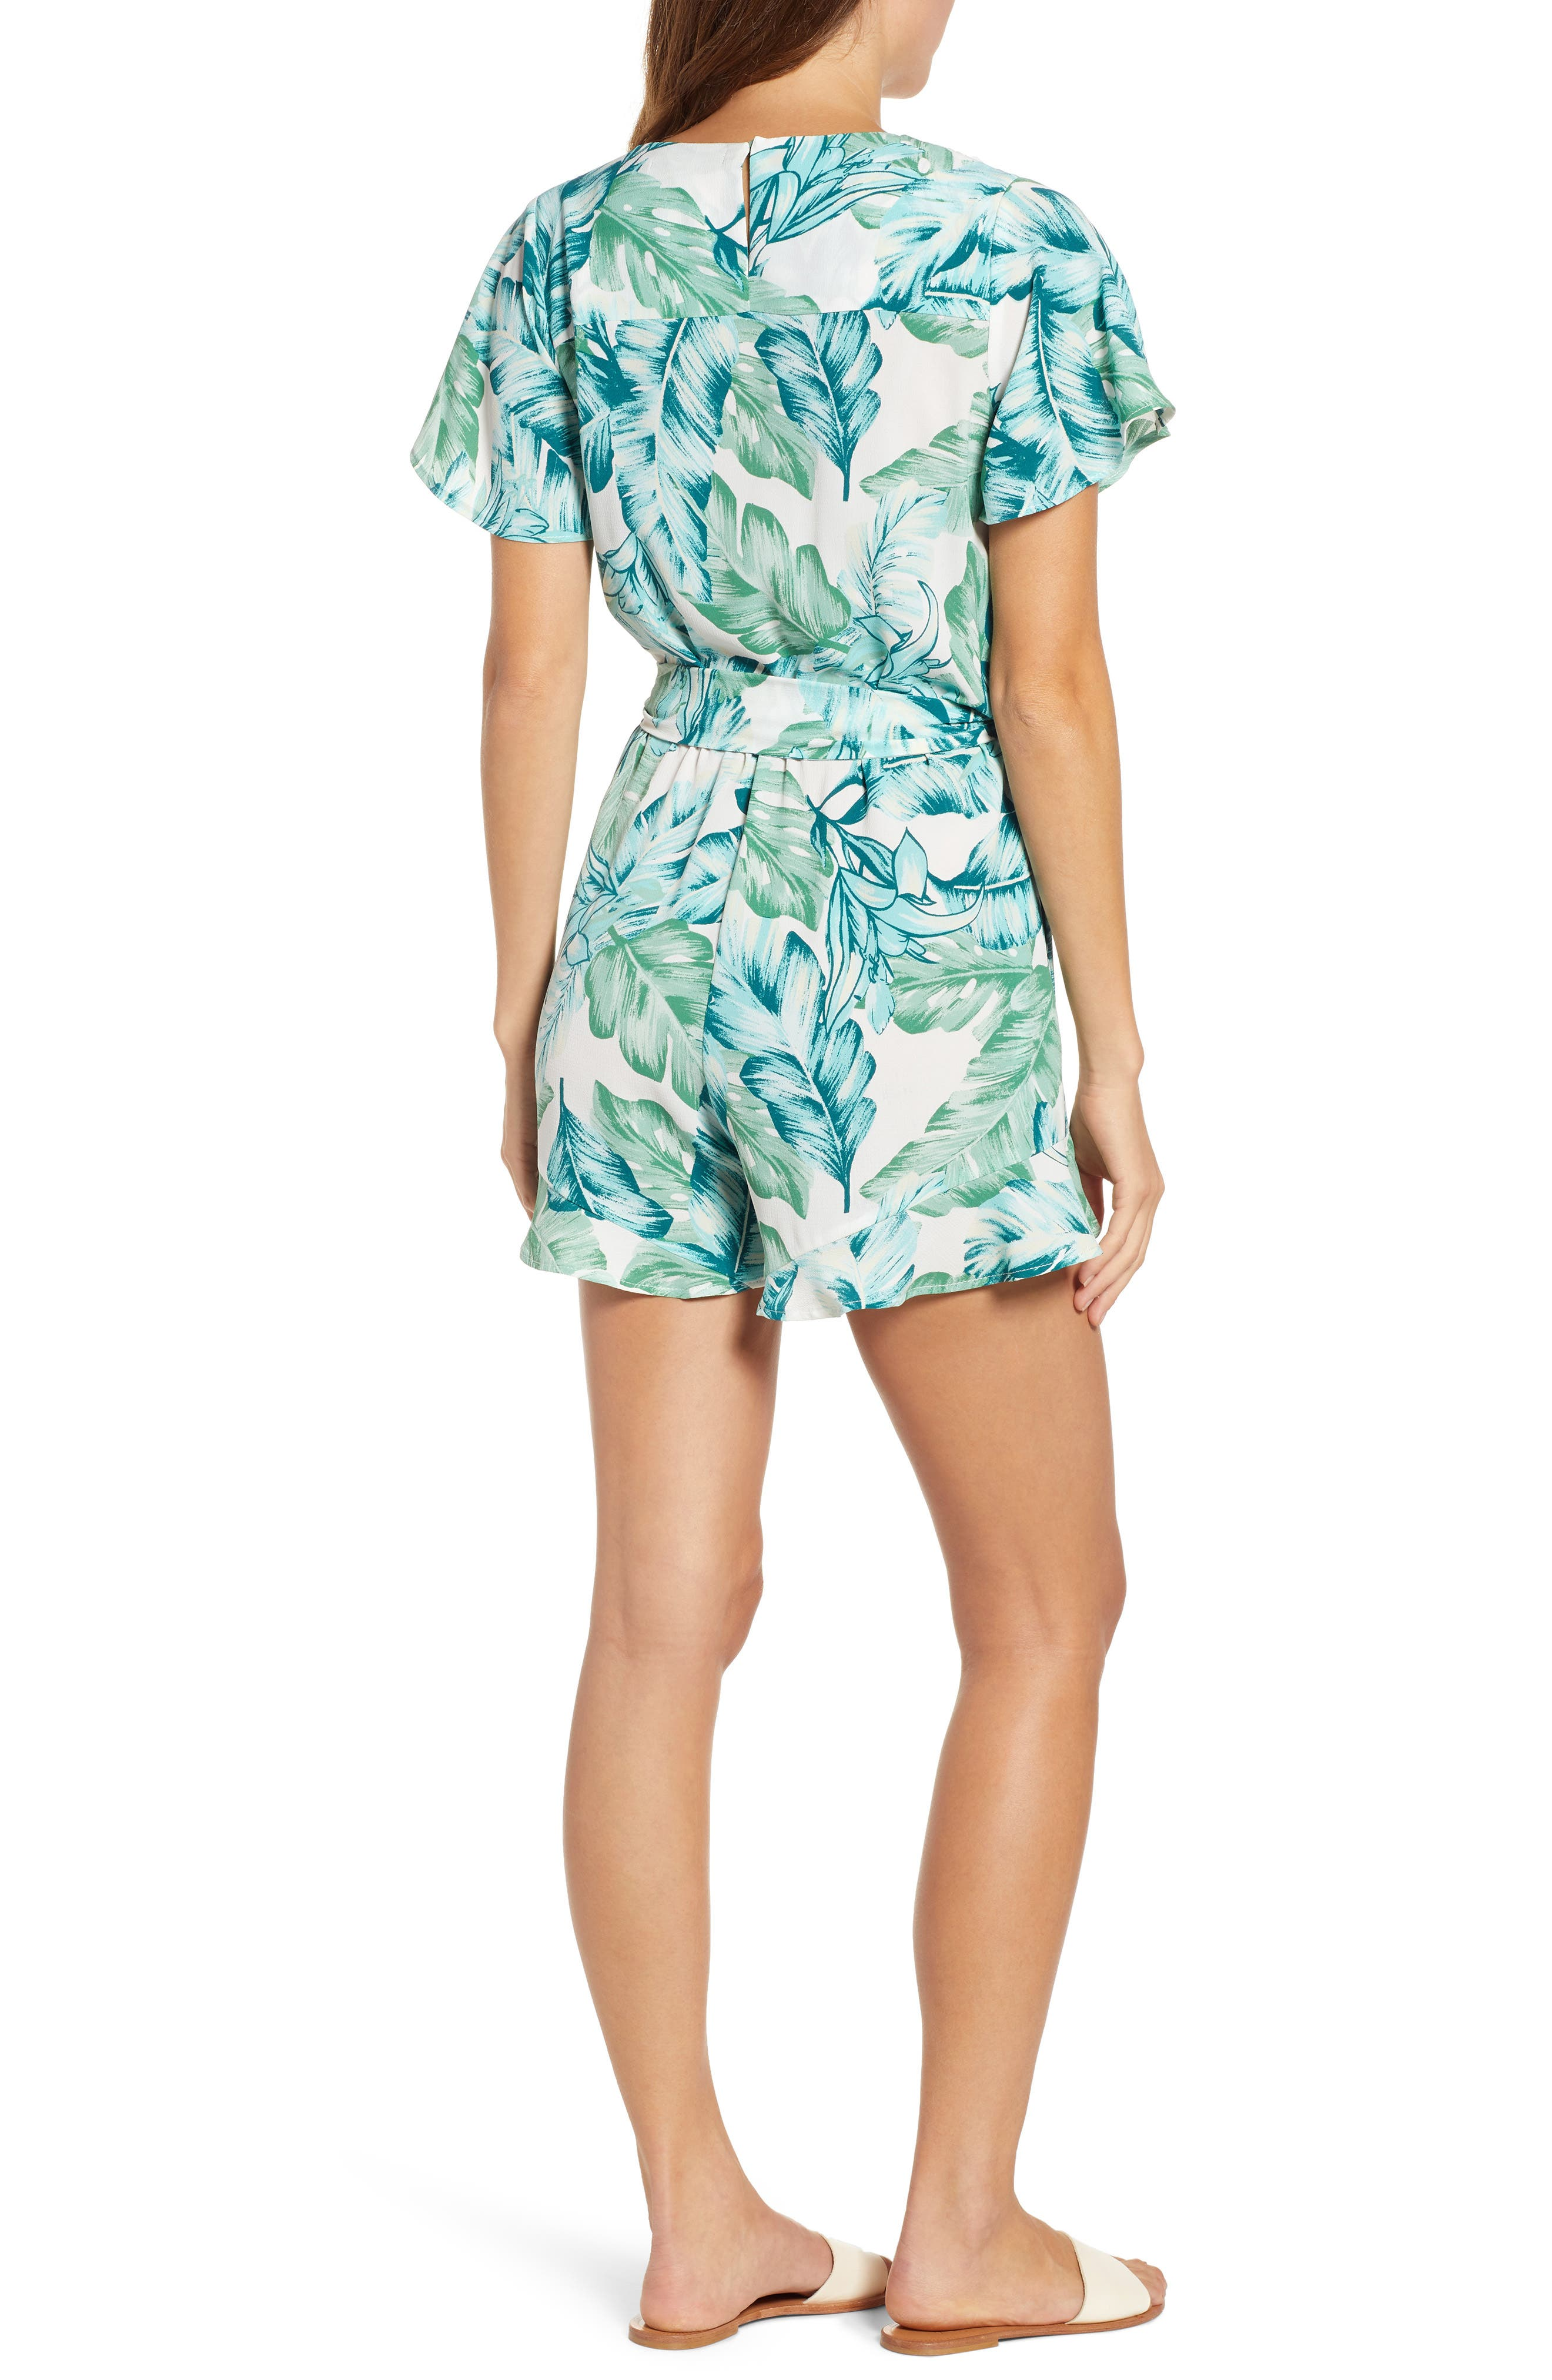 GIBSON, x Hi Sugarplum! Catalina Ruffle Hem Romper, Alternate thumbnail 2, color, PALM